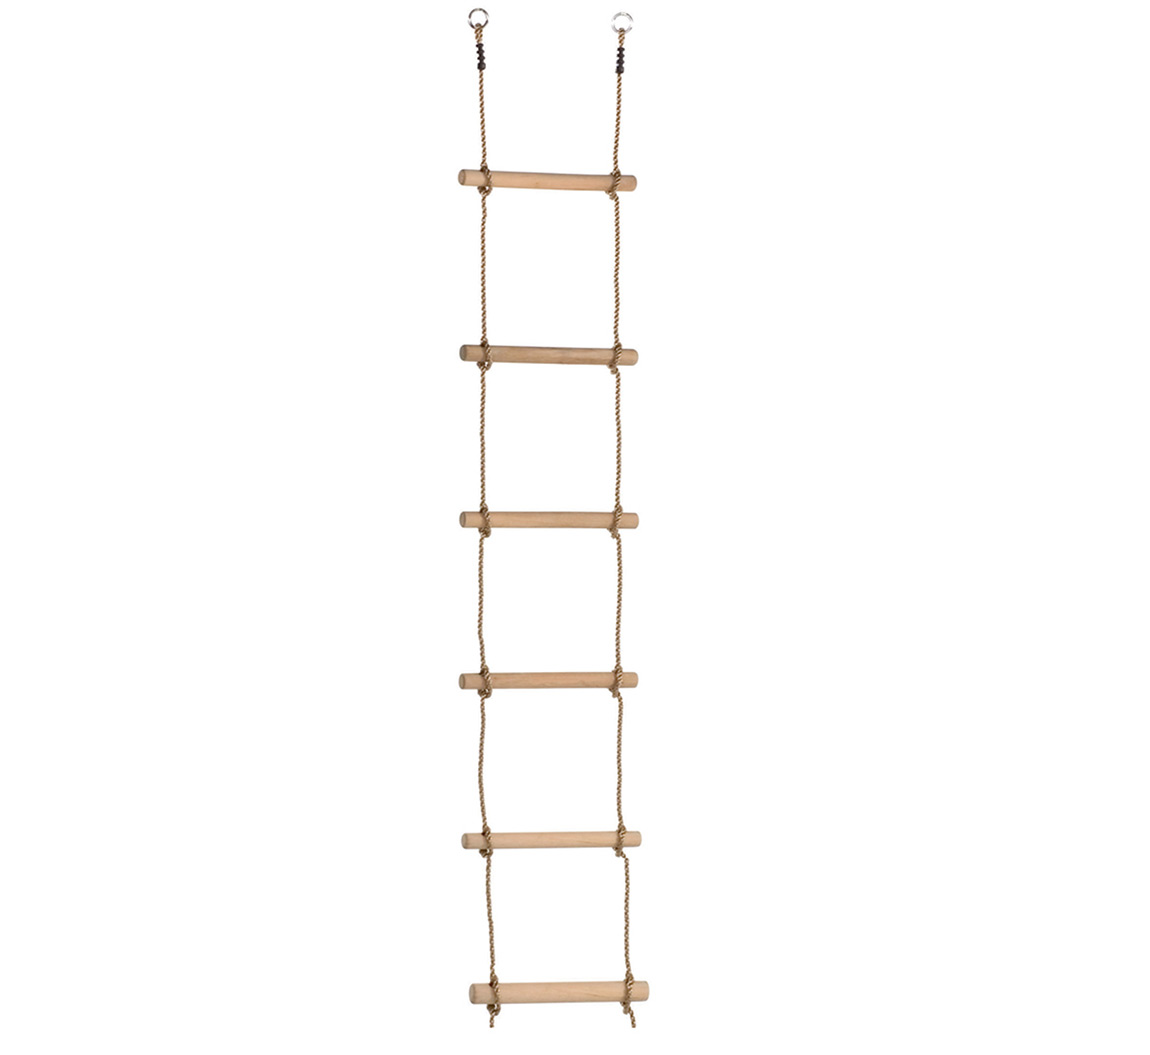 Rope Ladder Wooden Tree House Ladder Big Game Hunters